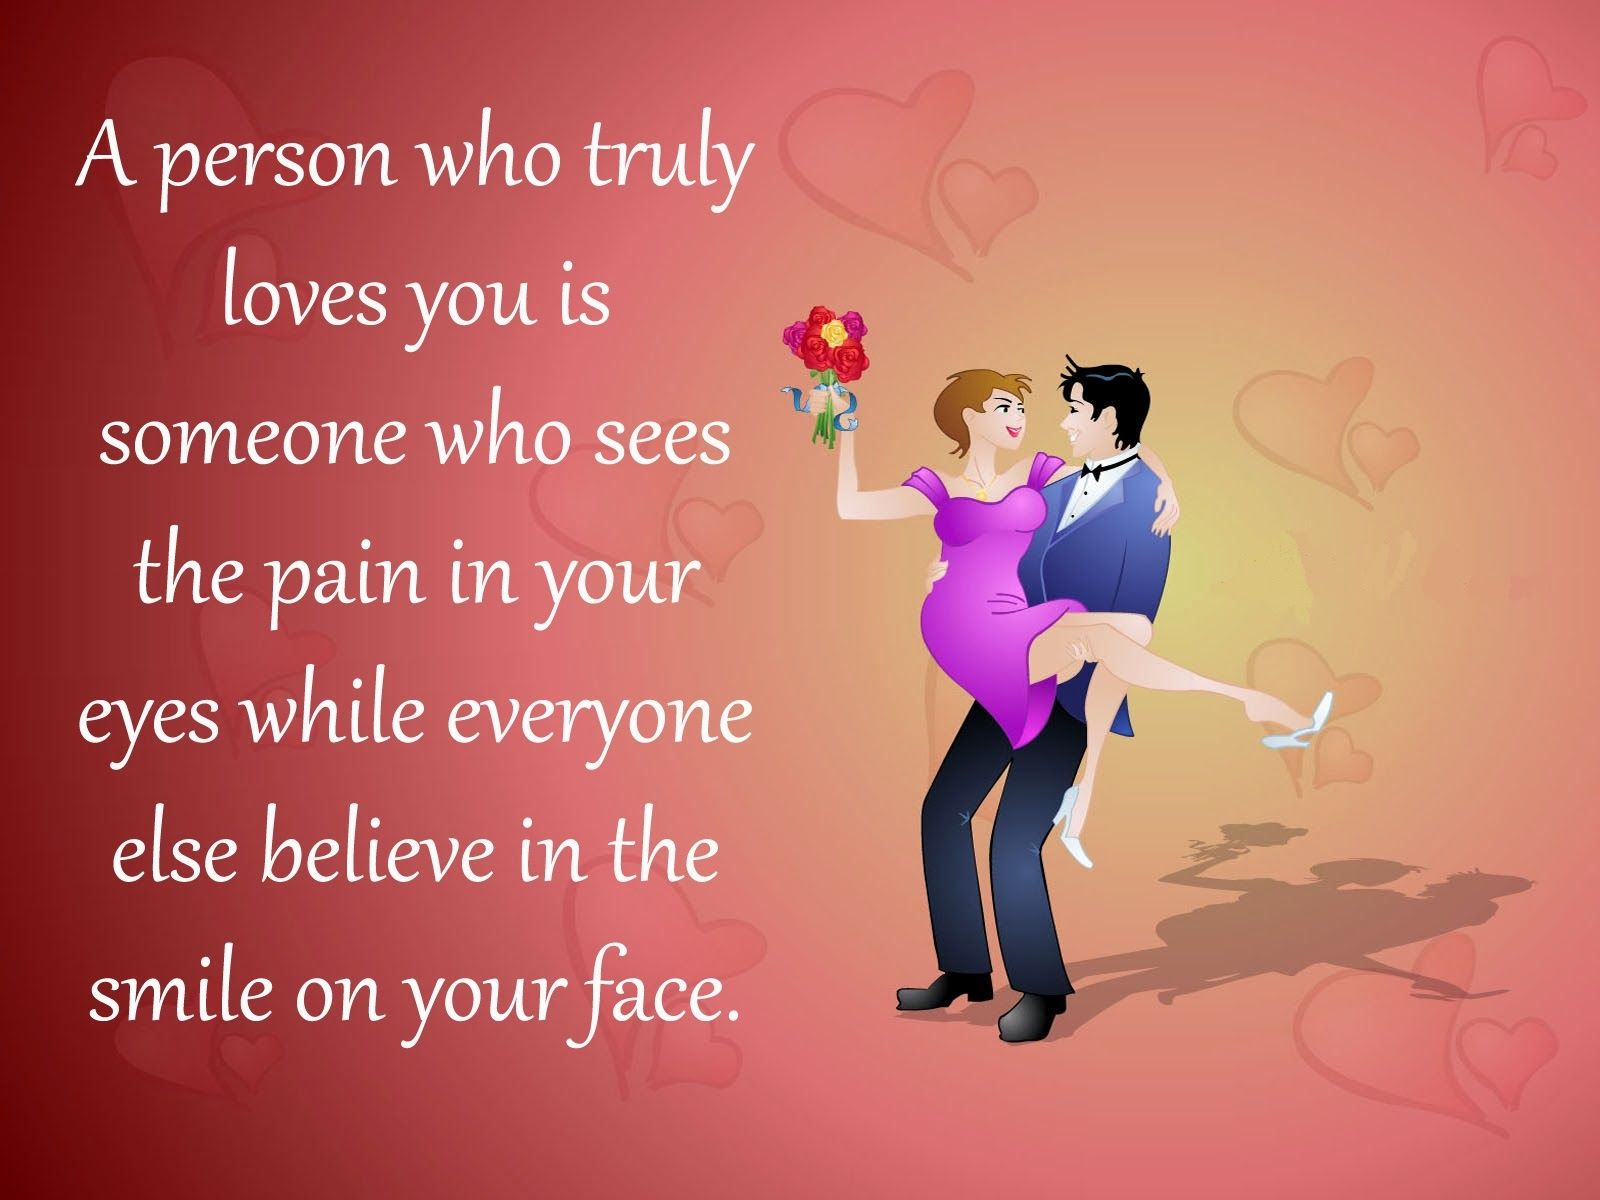 happy valentines day 2018 quotes wishes sms messages images - Valentine Wishes For Husband